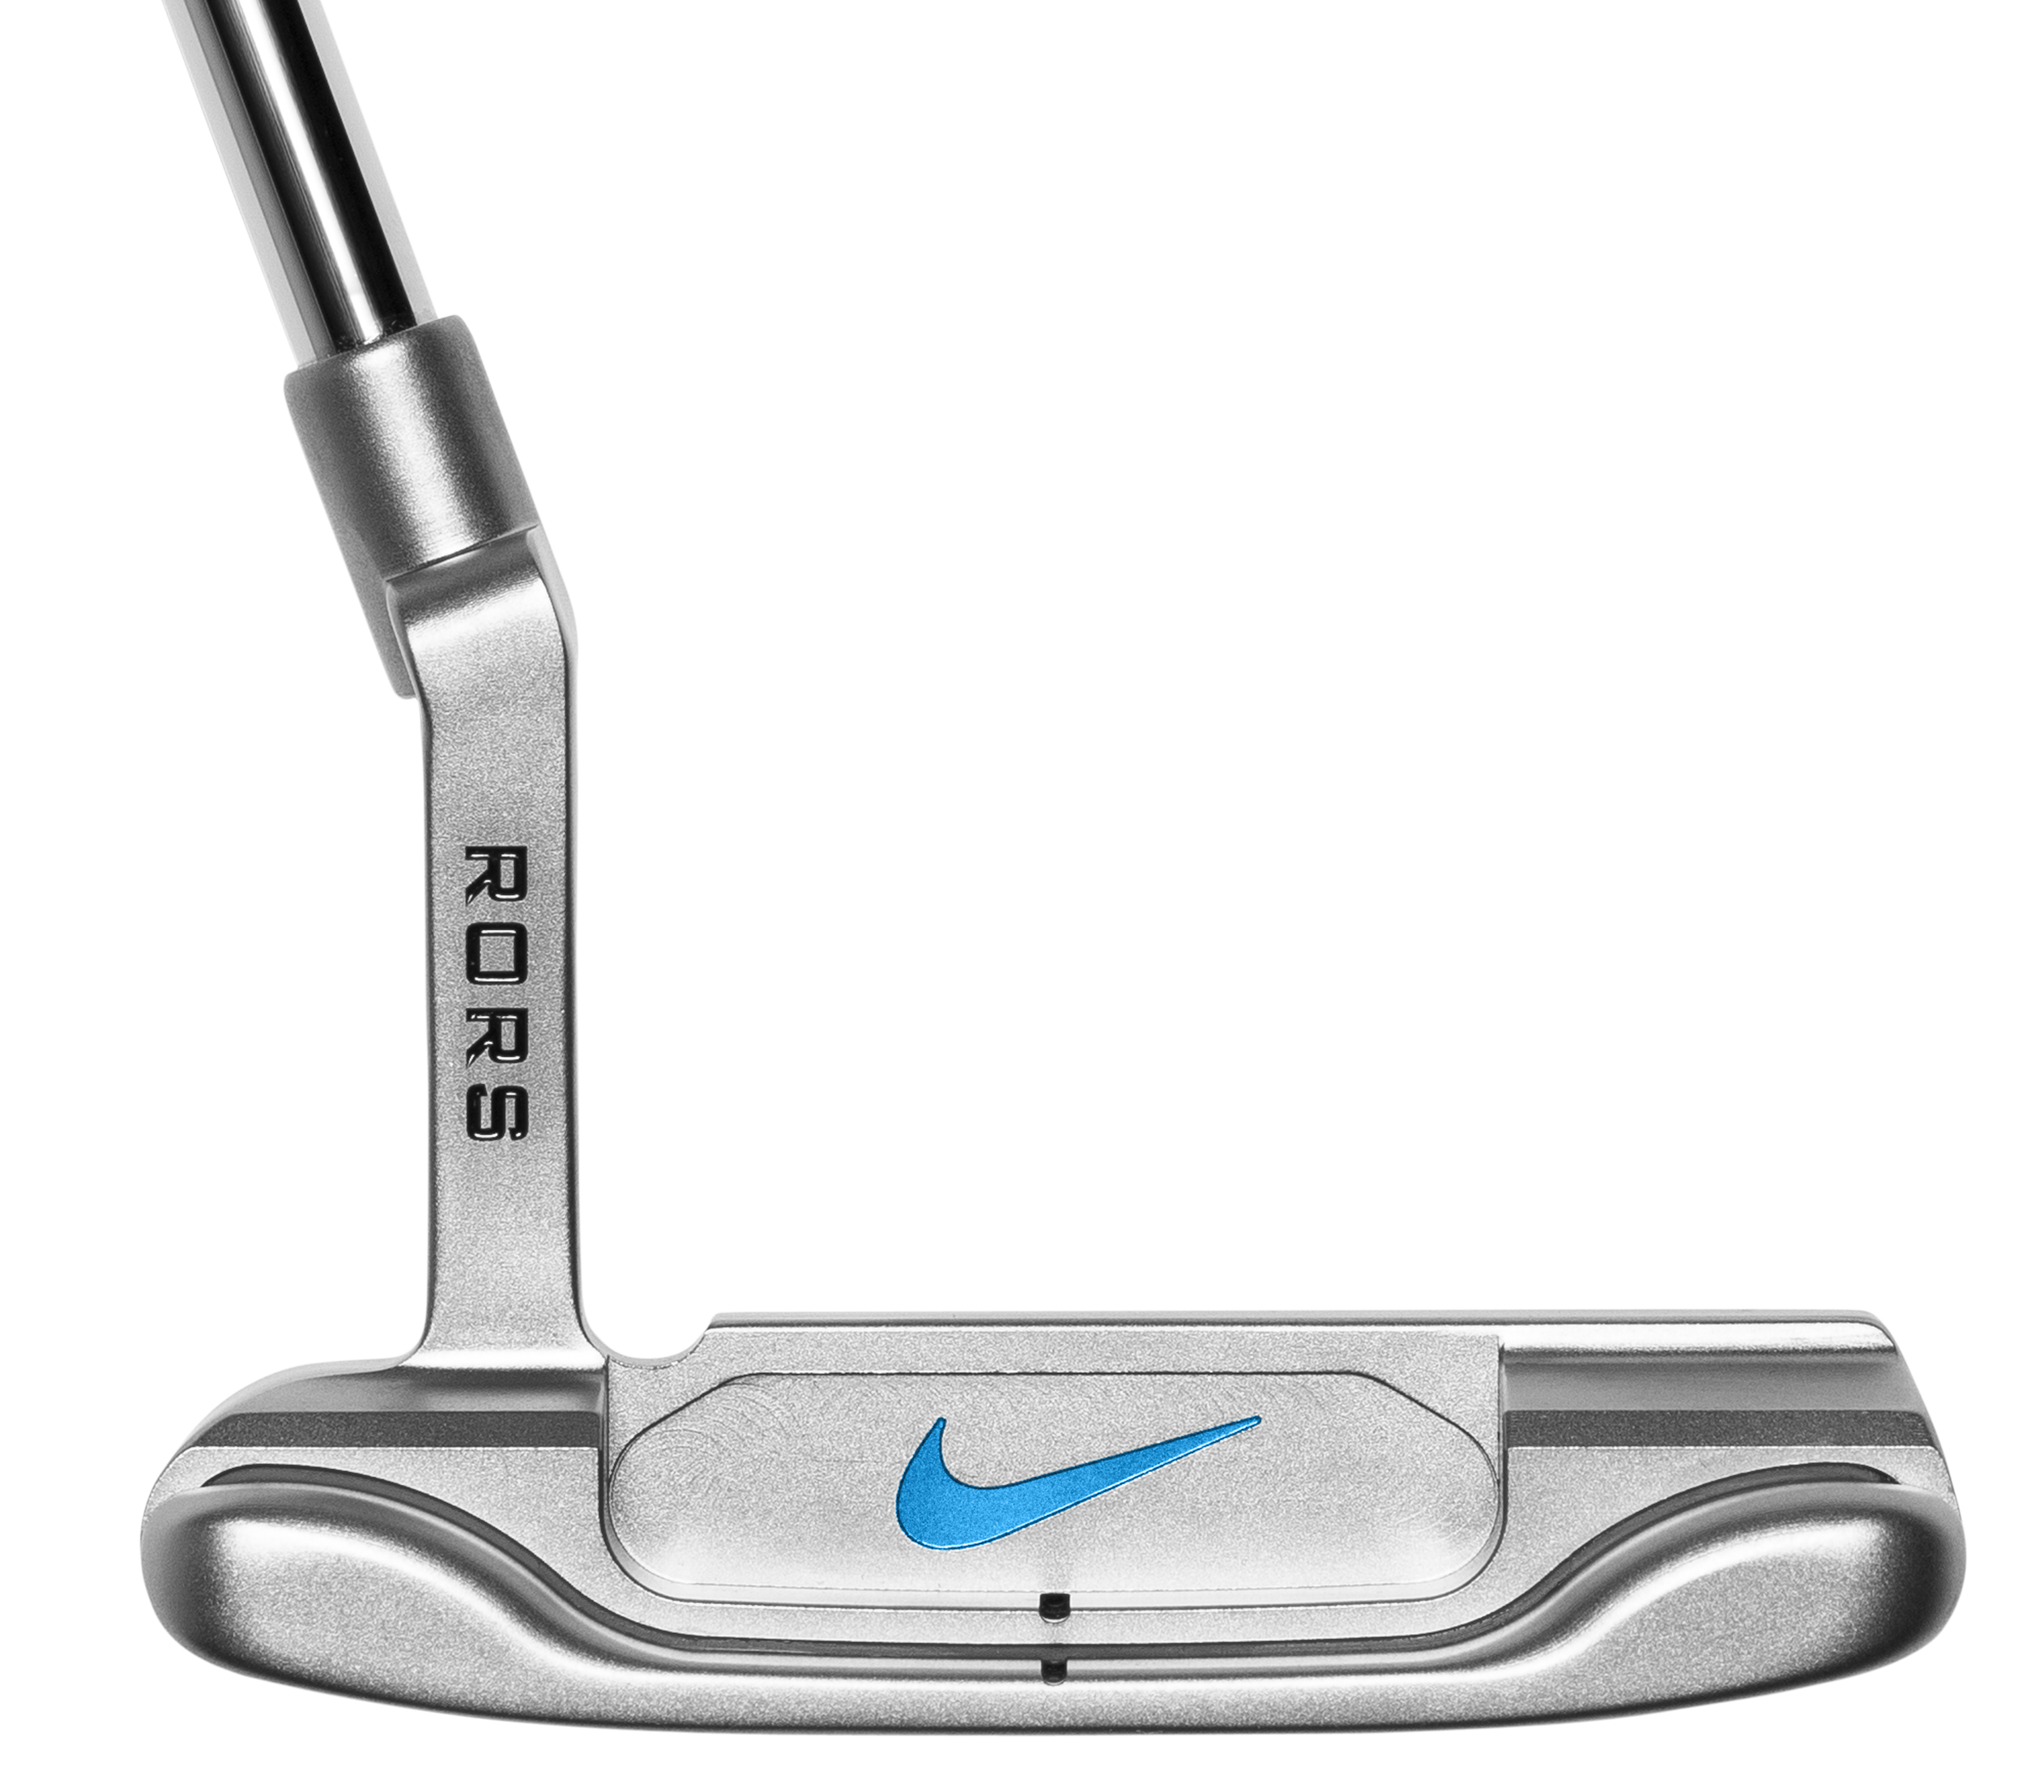 Rory McIlroy's putter? Too bad